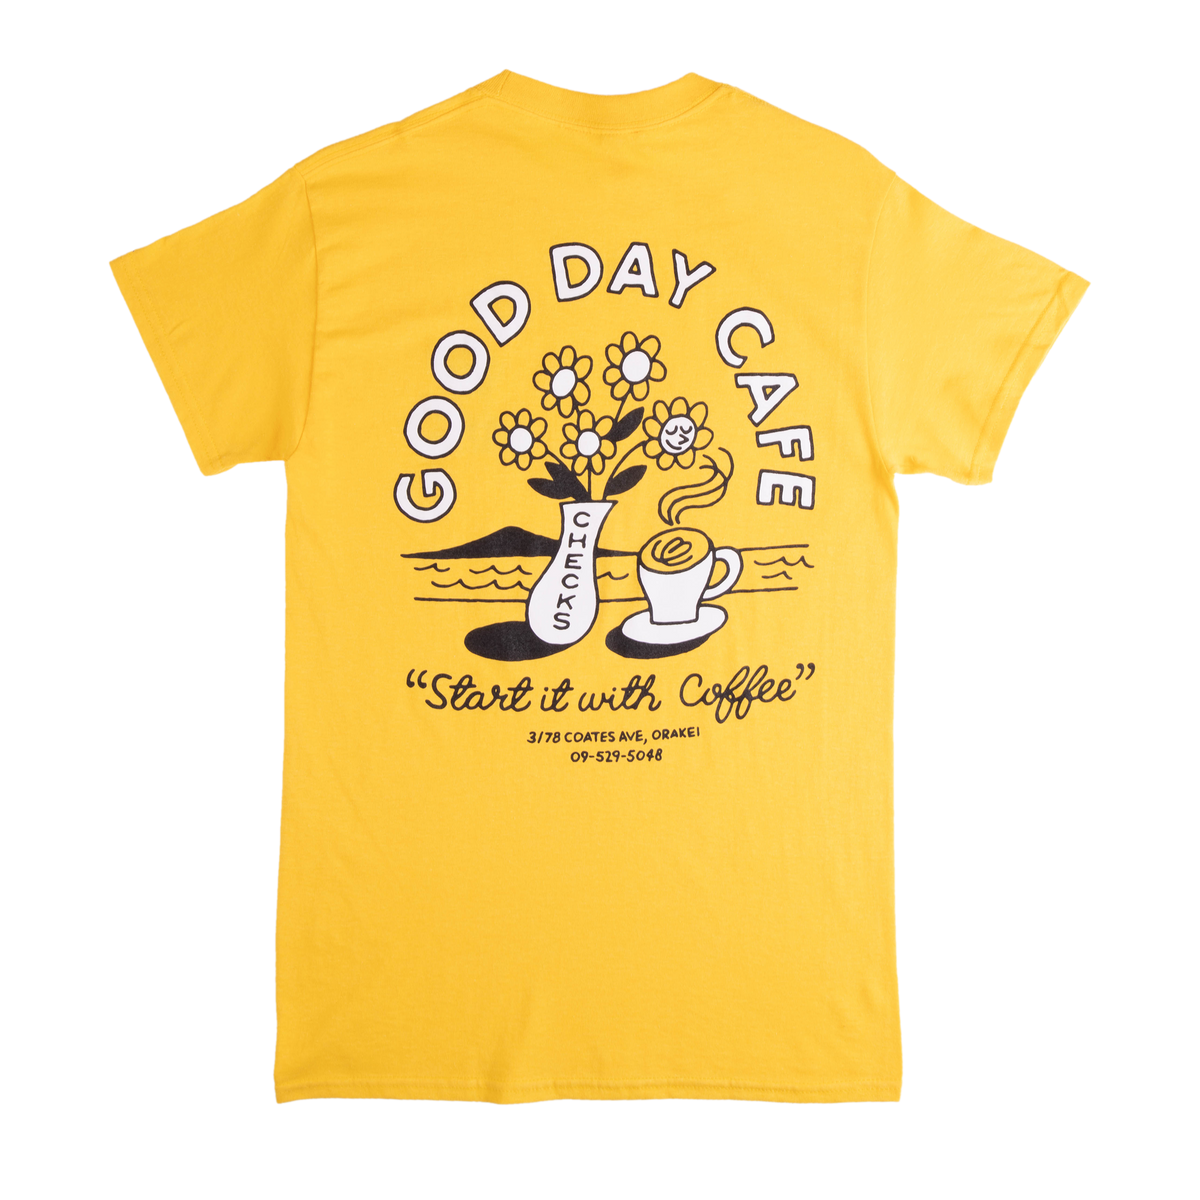 Checks x Good Day T-shirt Yellow | CHECKS DOWNTOWN